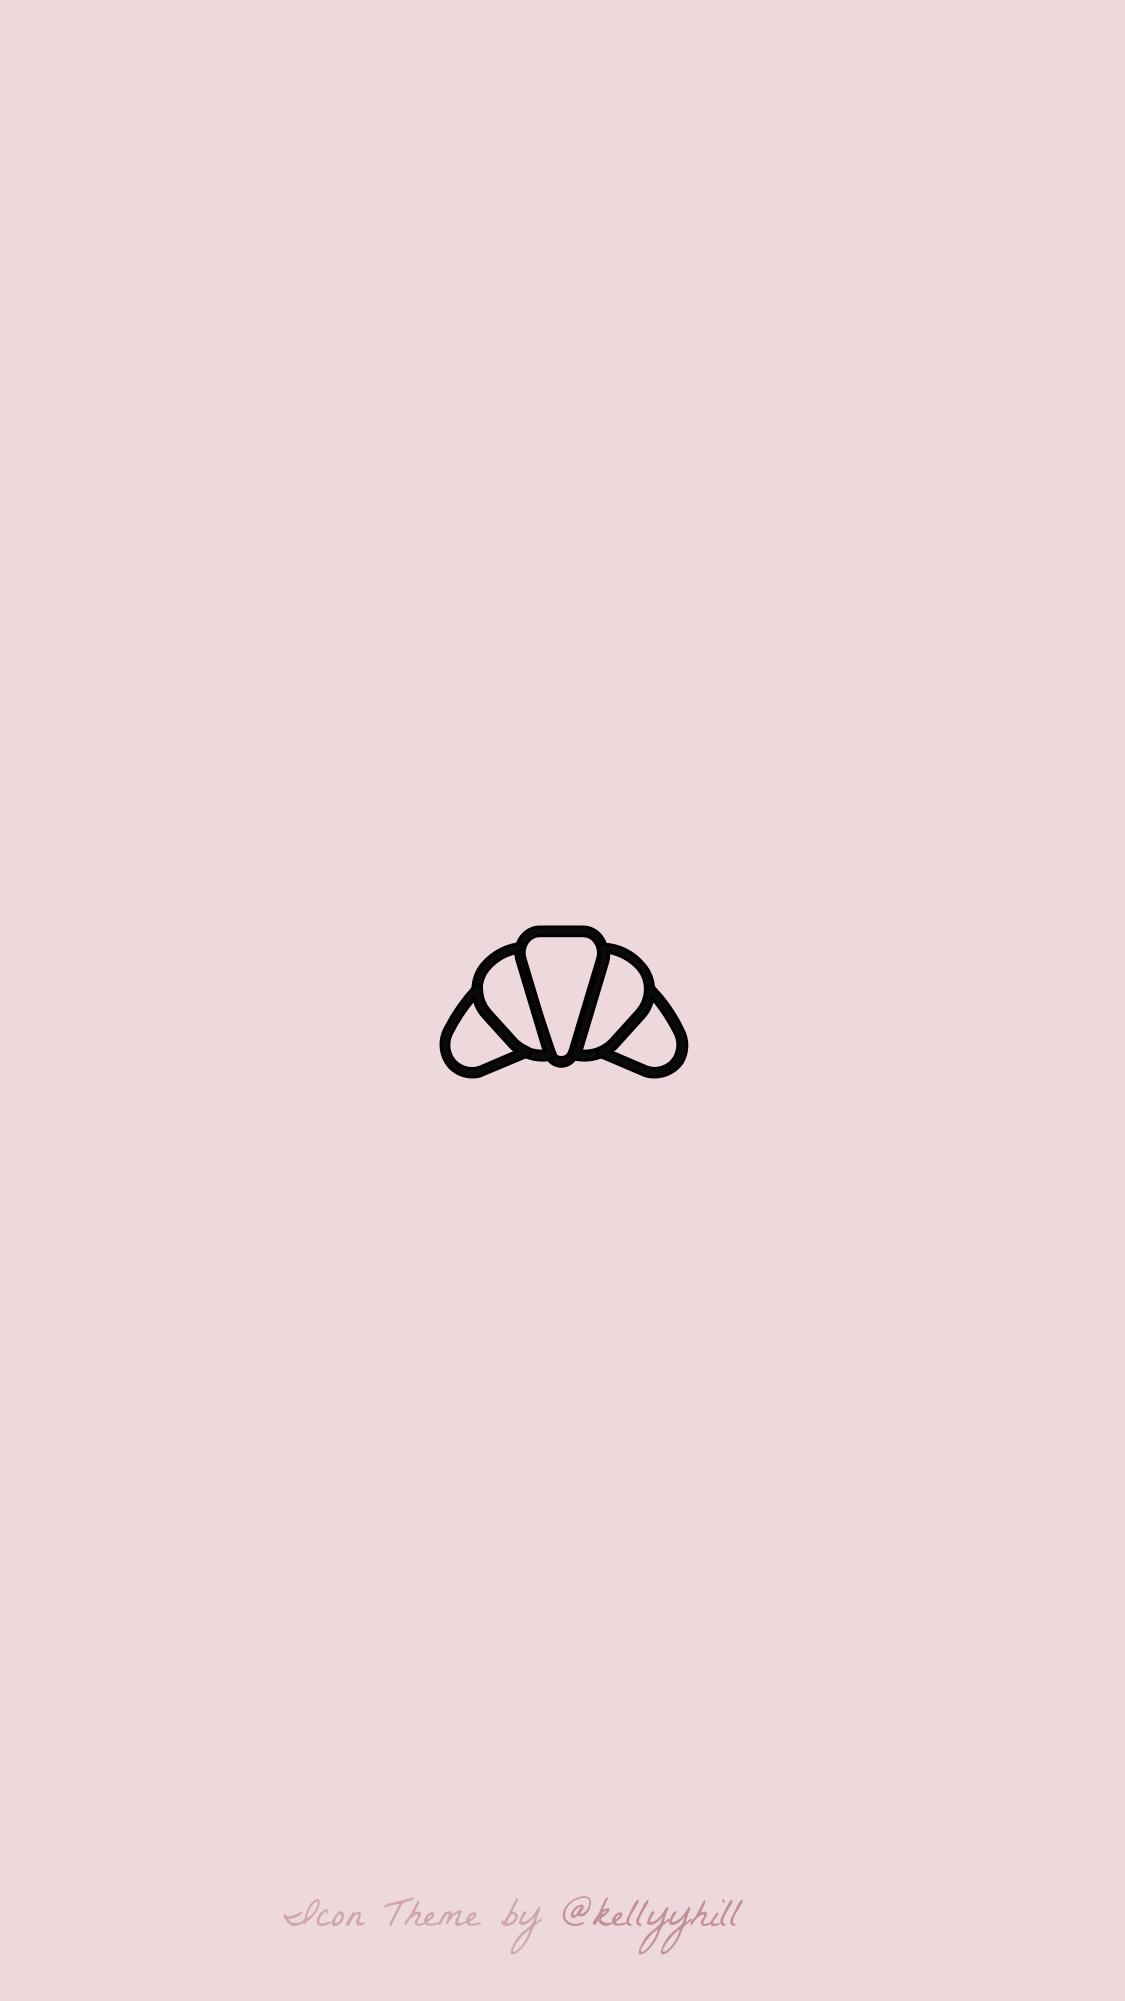 Kelly Hill Free Instagram Highlights Template Wanderlust Pink 03 Icons